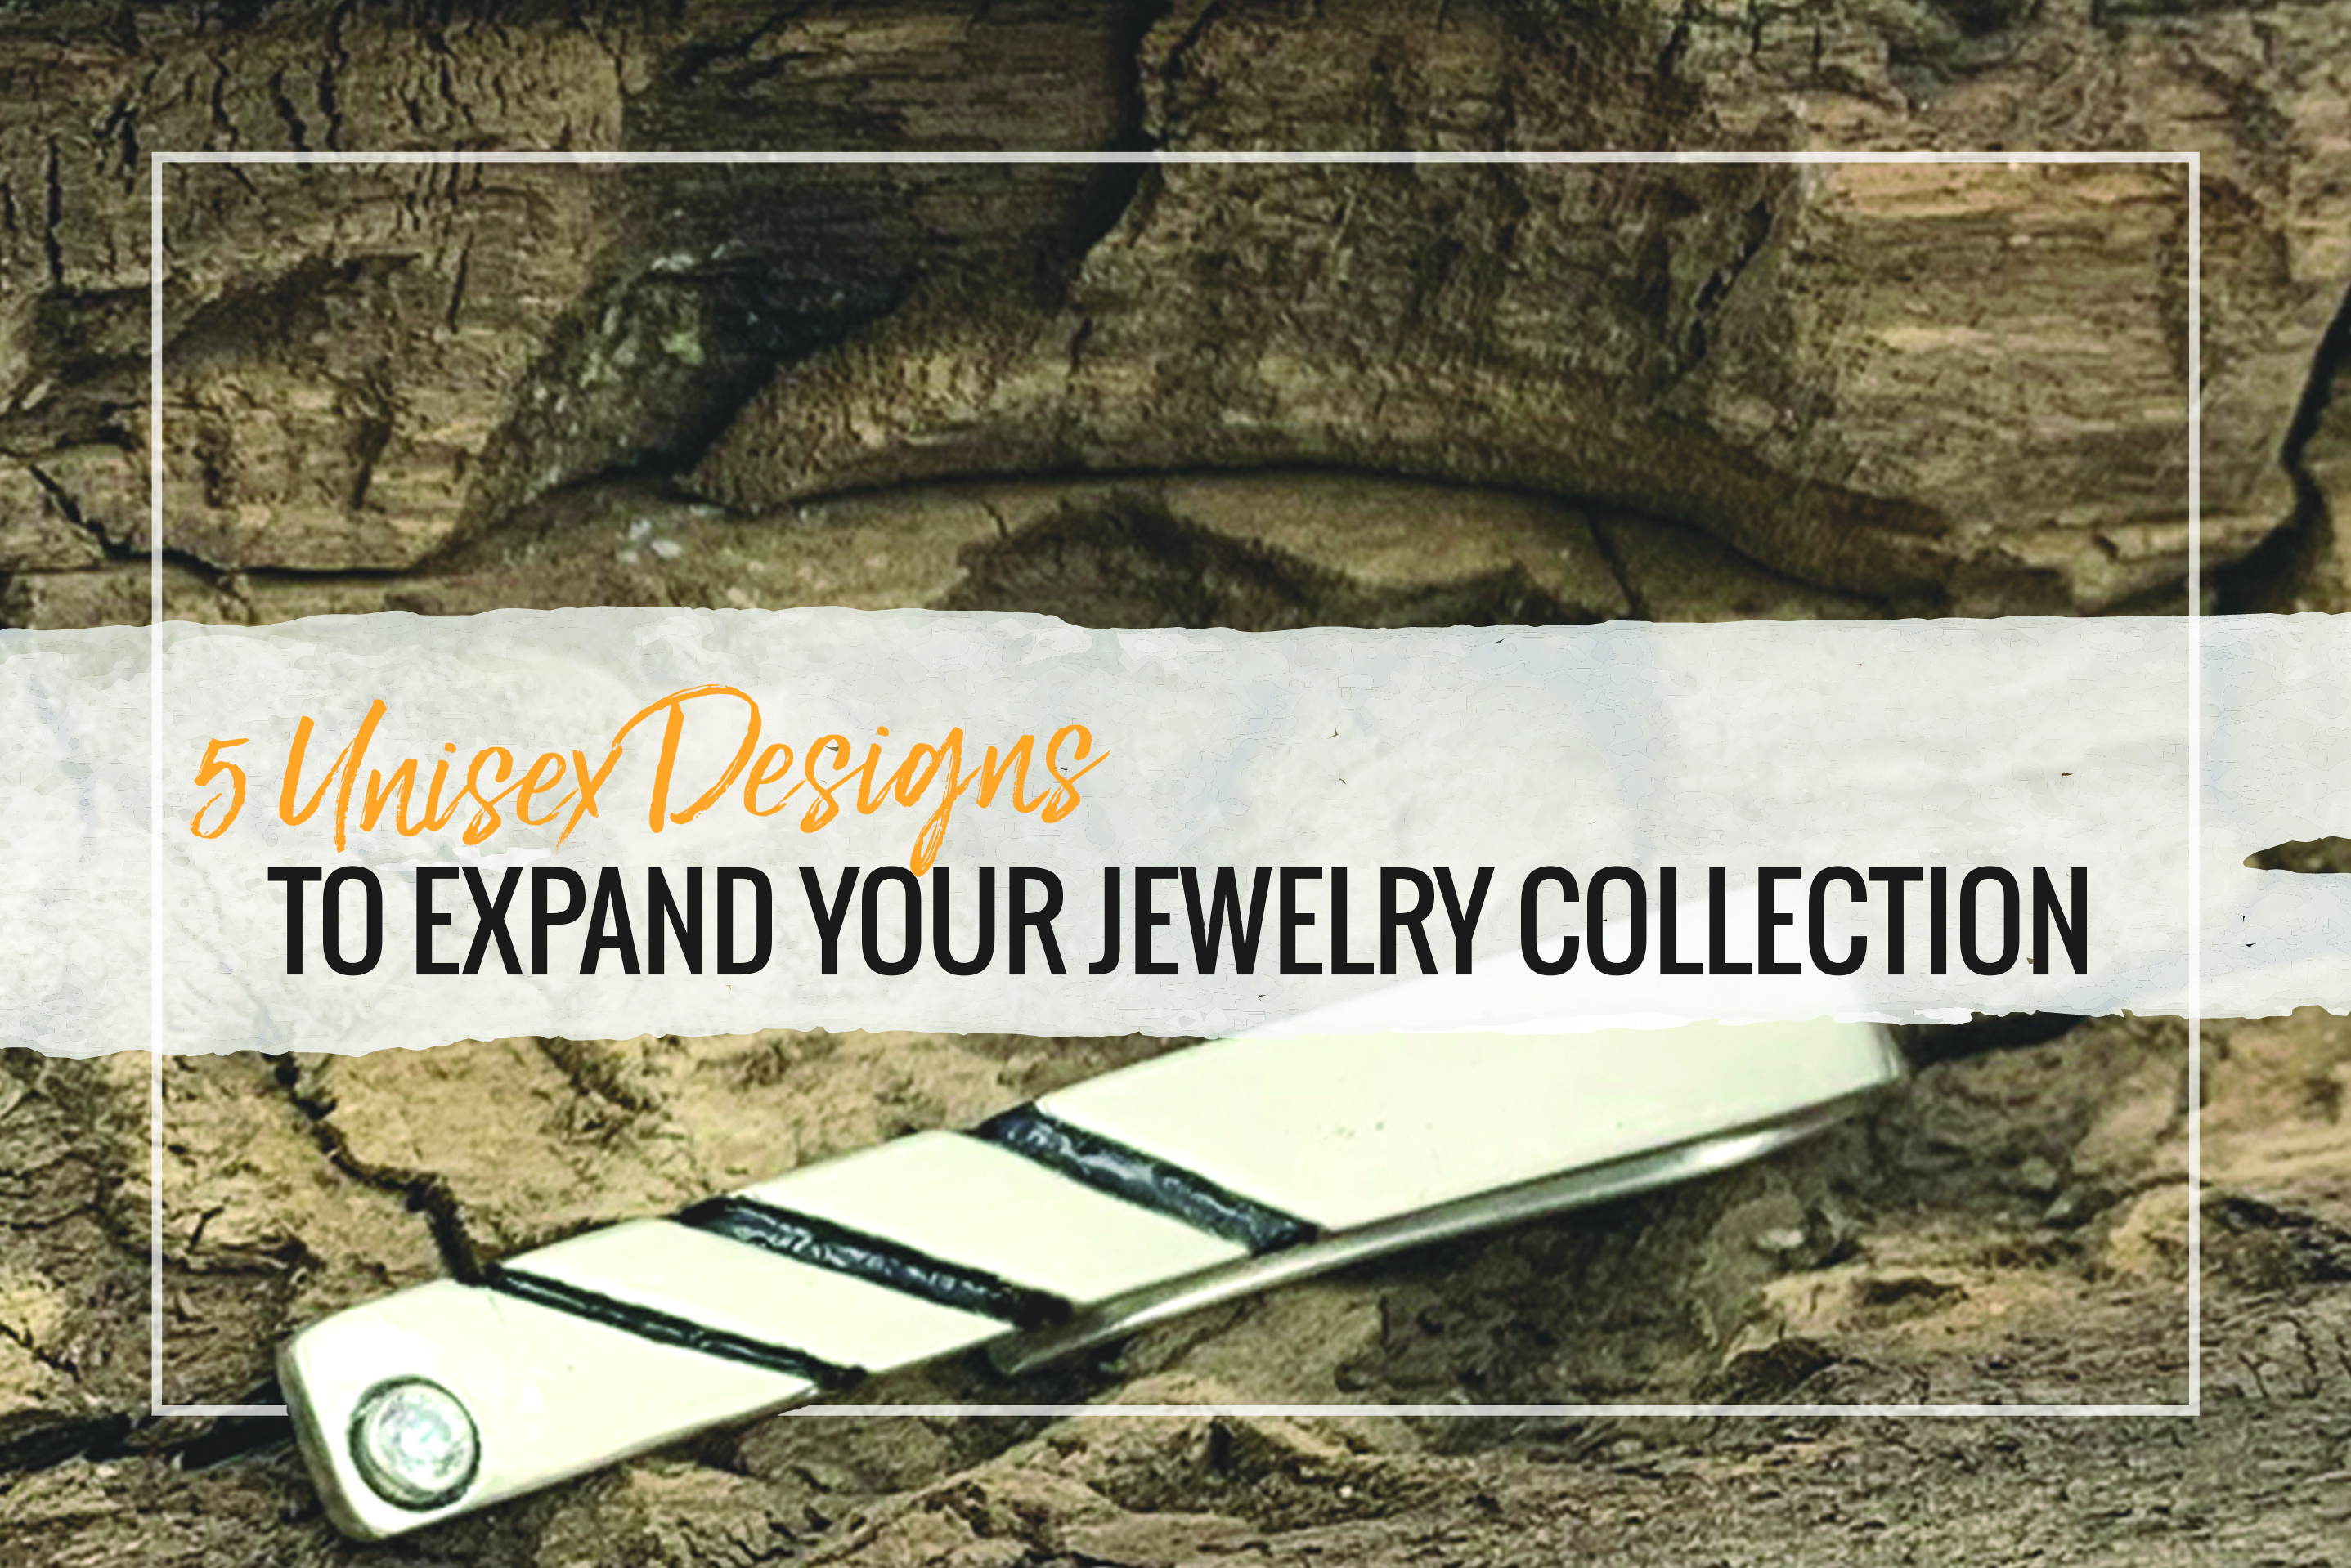 Are you interested in bringing in new clientele? Check out these 5  unisex designs to expand your jewelry collection!